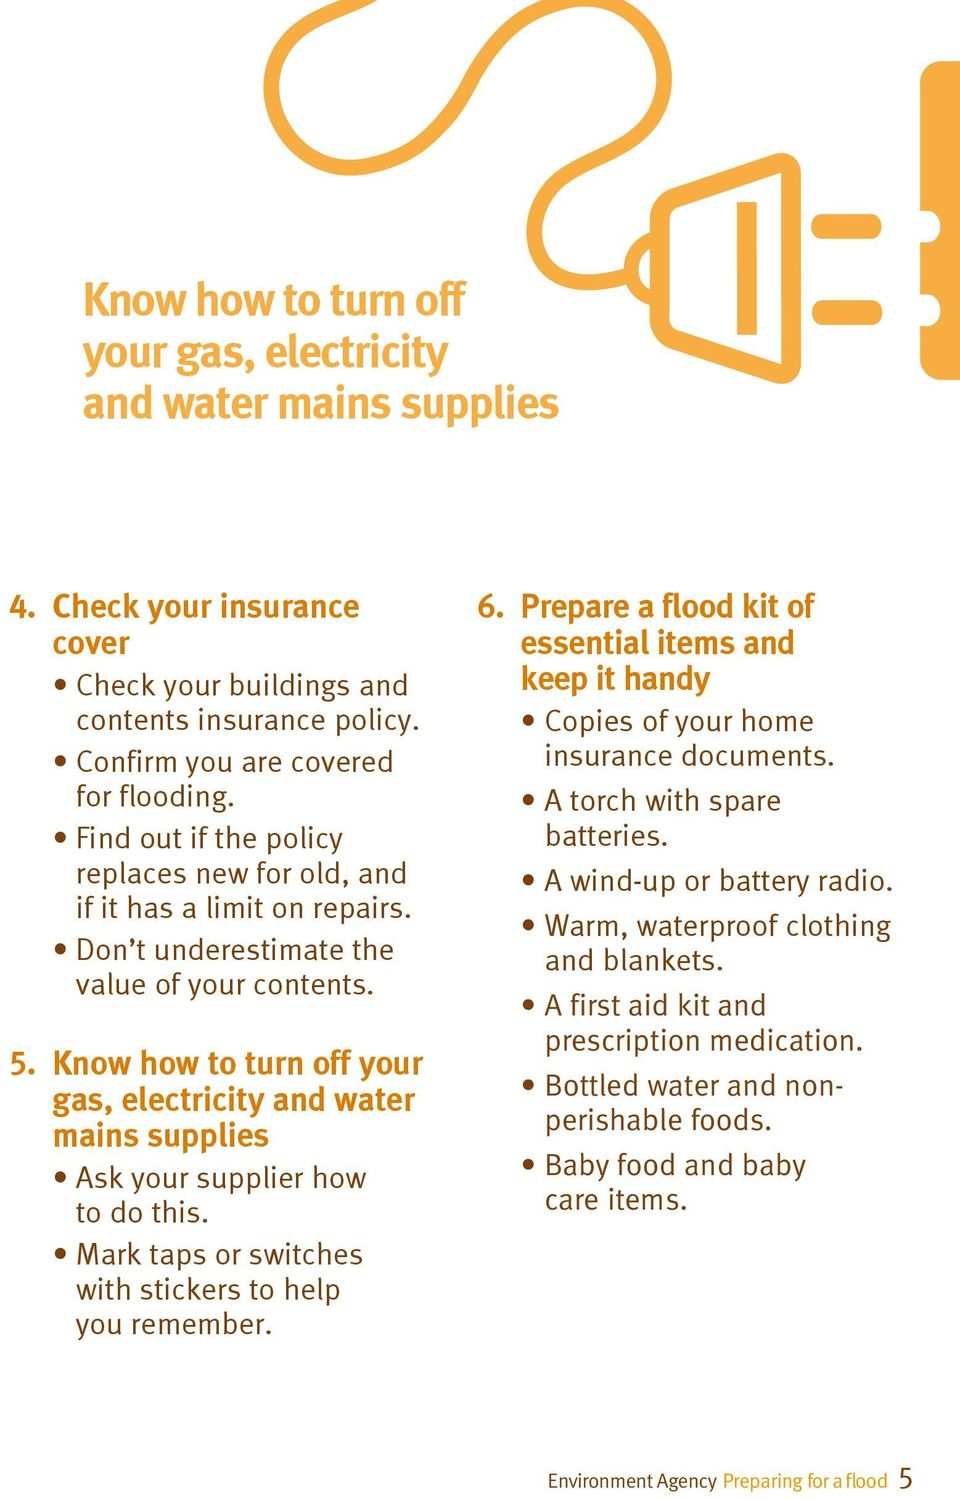 Know how to turn off your gas, electricity and water mains supplies Ask your supplier how to do this. Mark taps or switches with stickers to help you remember. 6.